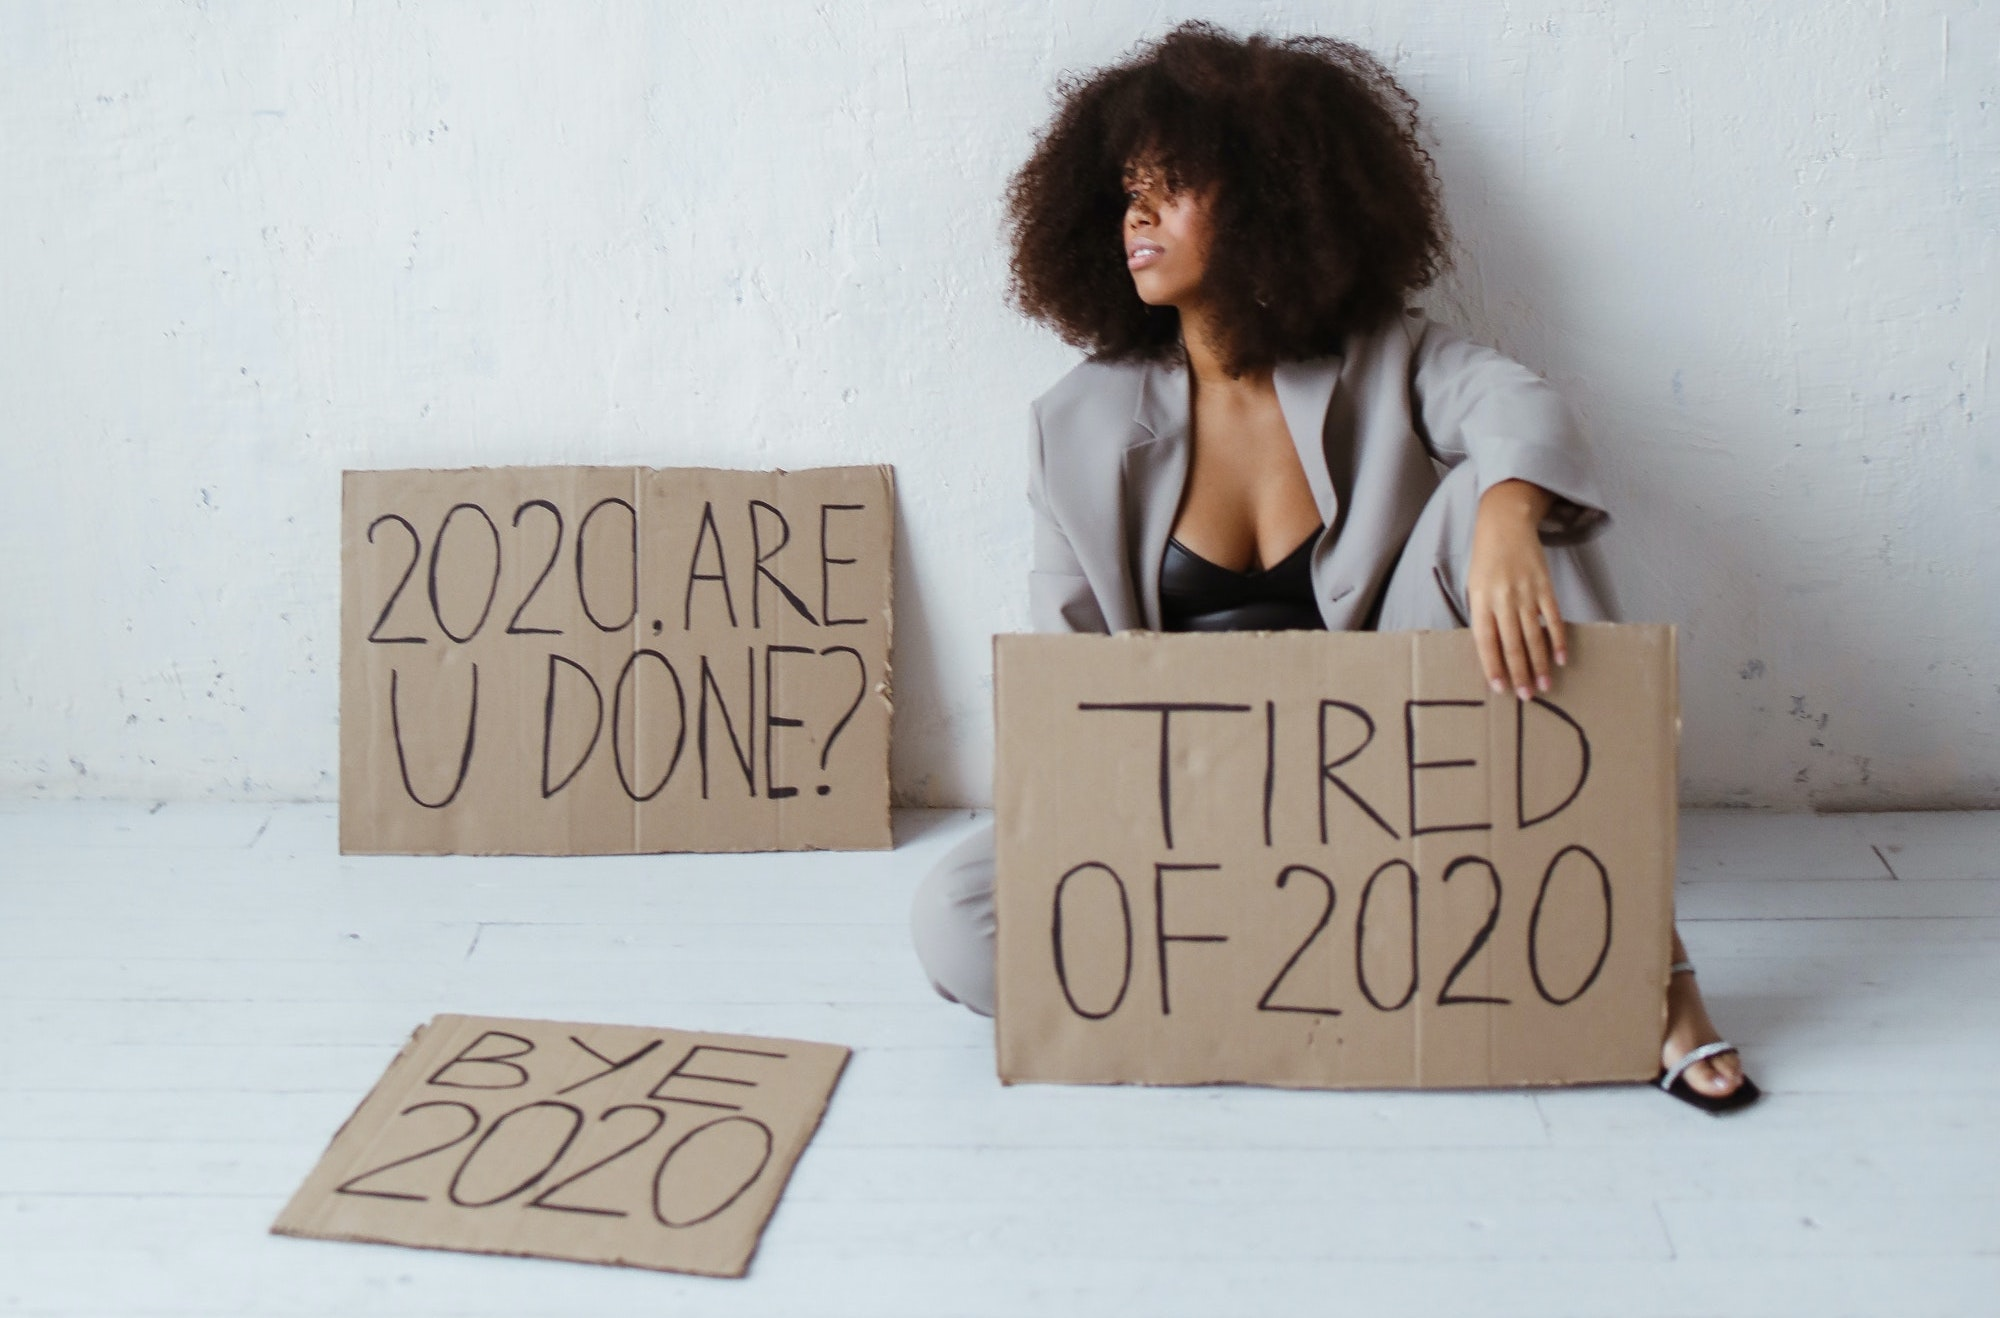 How To Plan Like a Boss - Now Is The Time To Start Thinking About 2021 - Womenontopp.com - Women On Topp